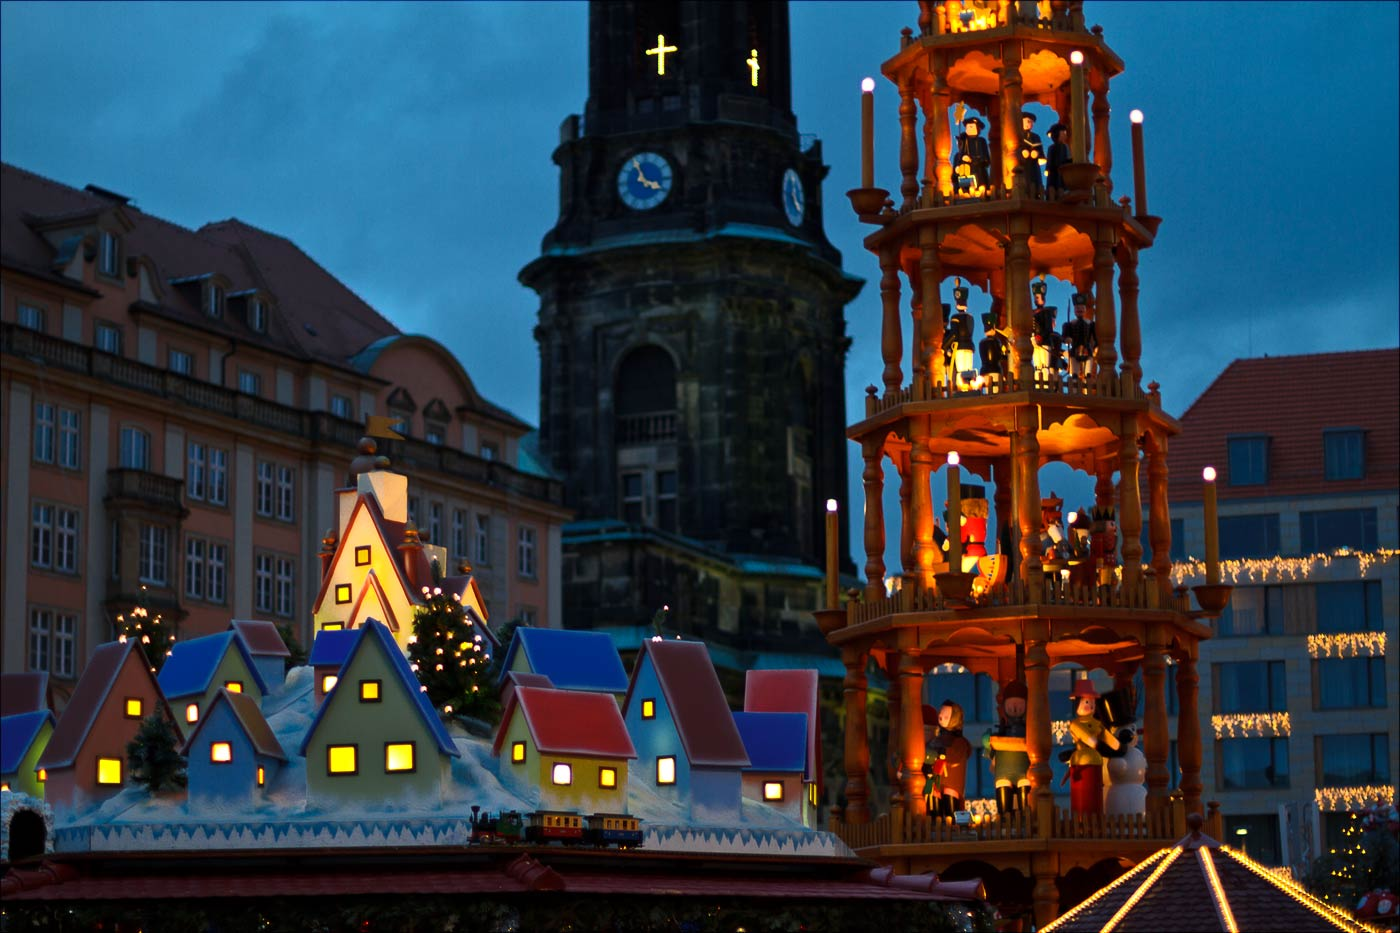 http://countryczech.com/wp-content/uploads/2015/12/photos/20111217-170055_Dresden.jpg